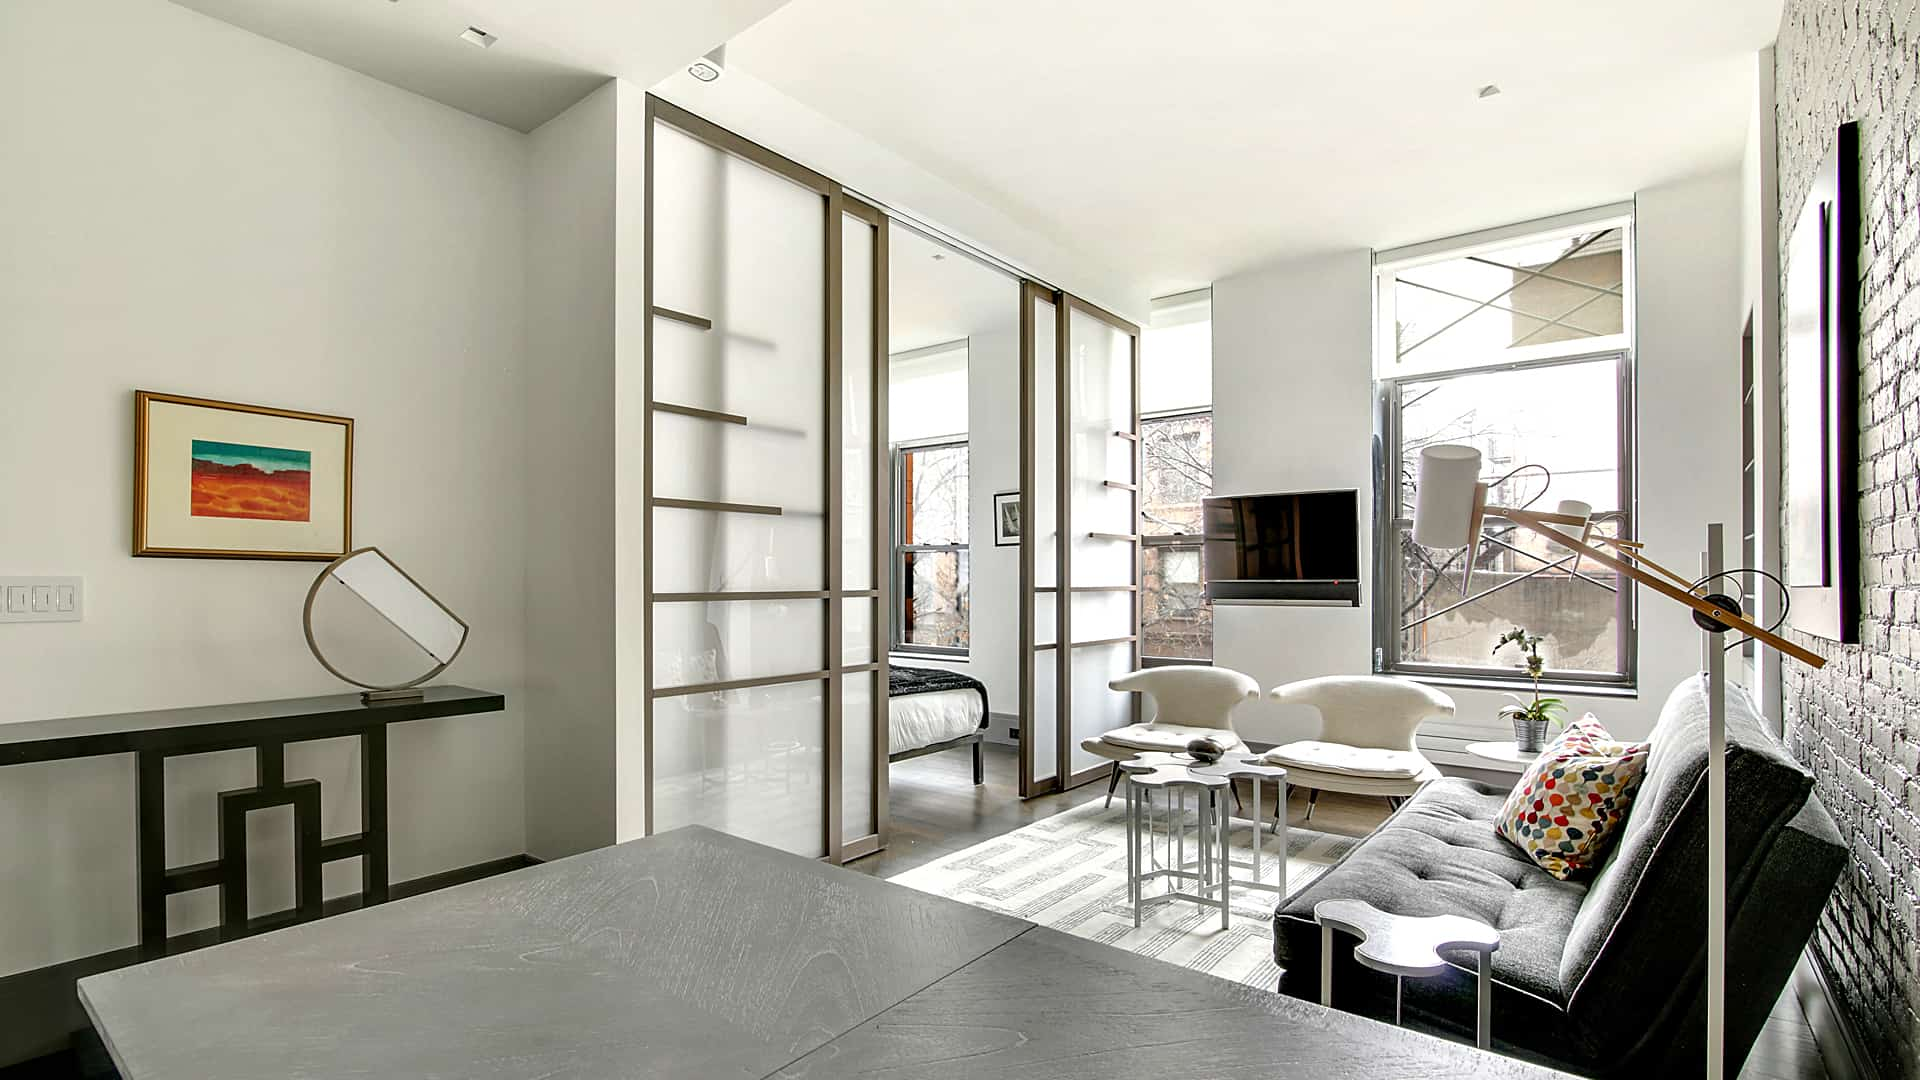 How To Separate A Room Without A Wall Sliding Walls Doors By Raydoor